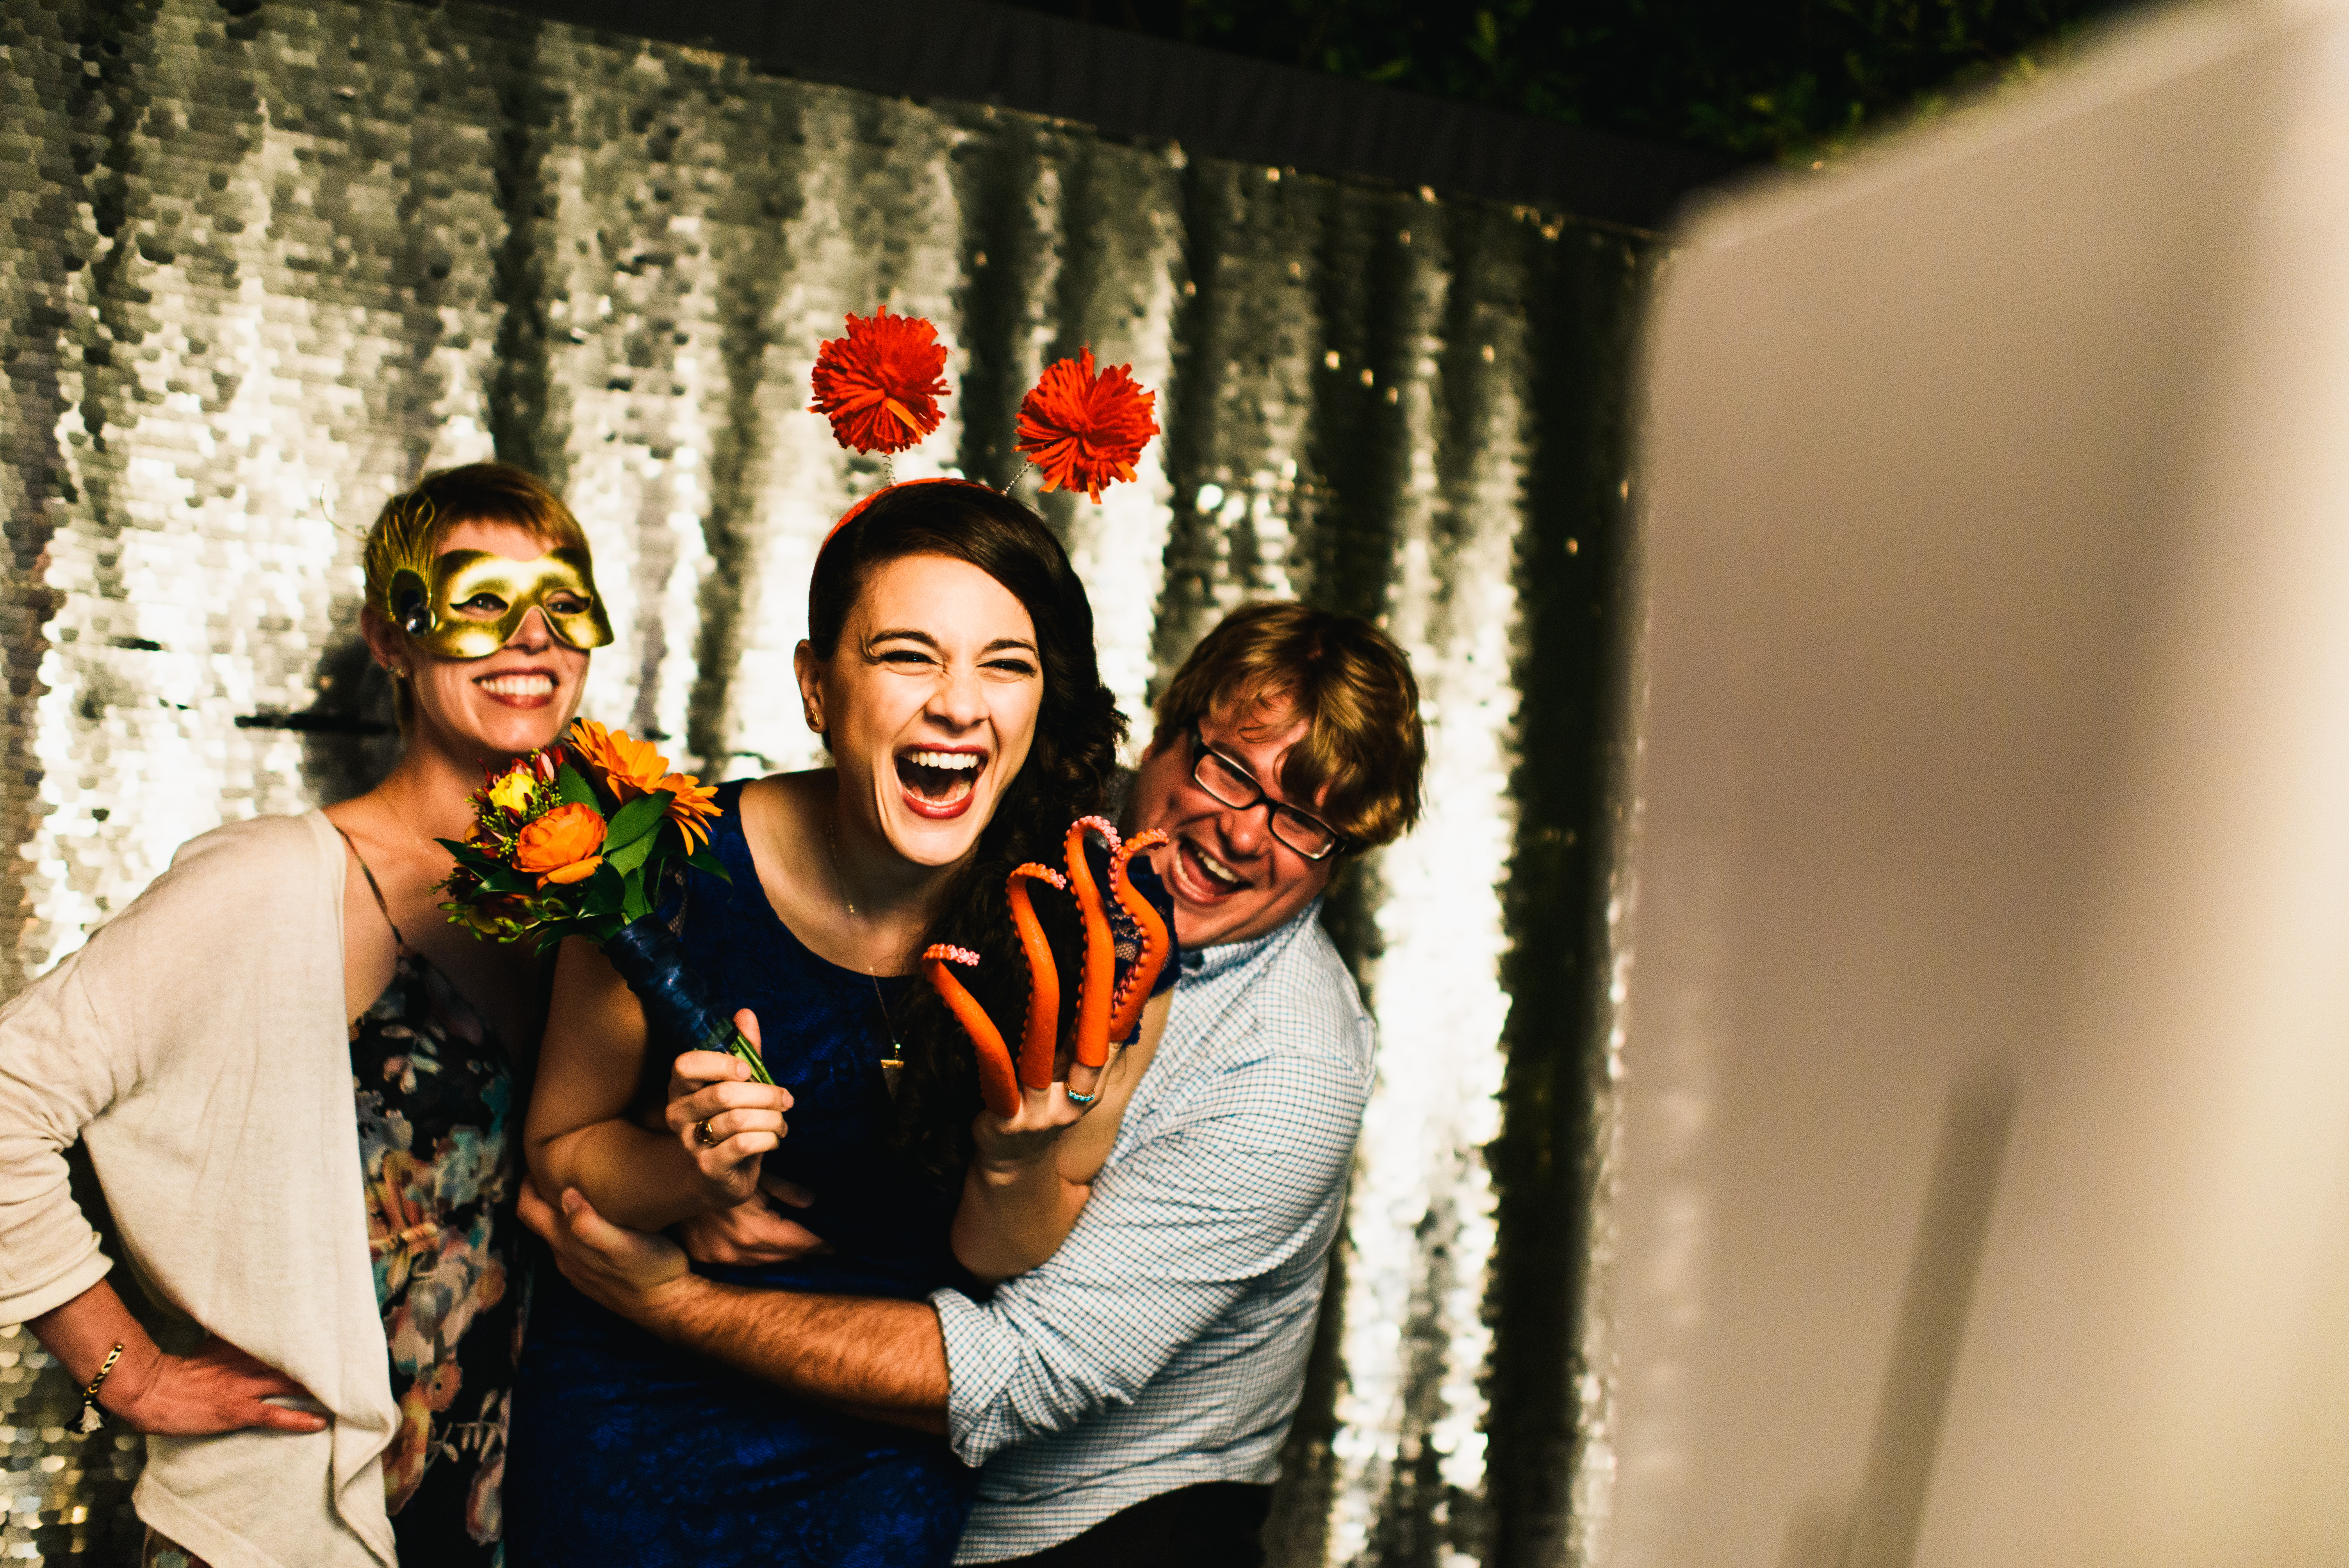 A bridesmaid laughing with friends in front of the Phizpix photo booth rental